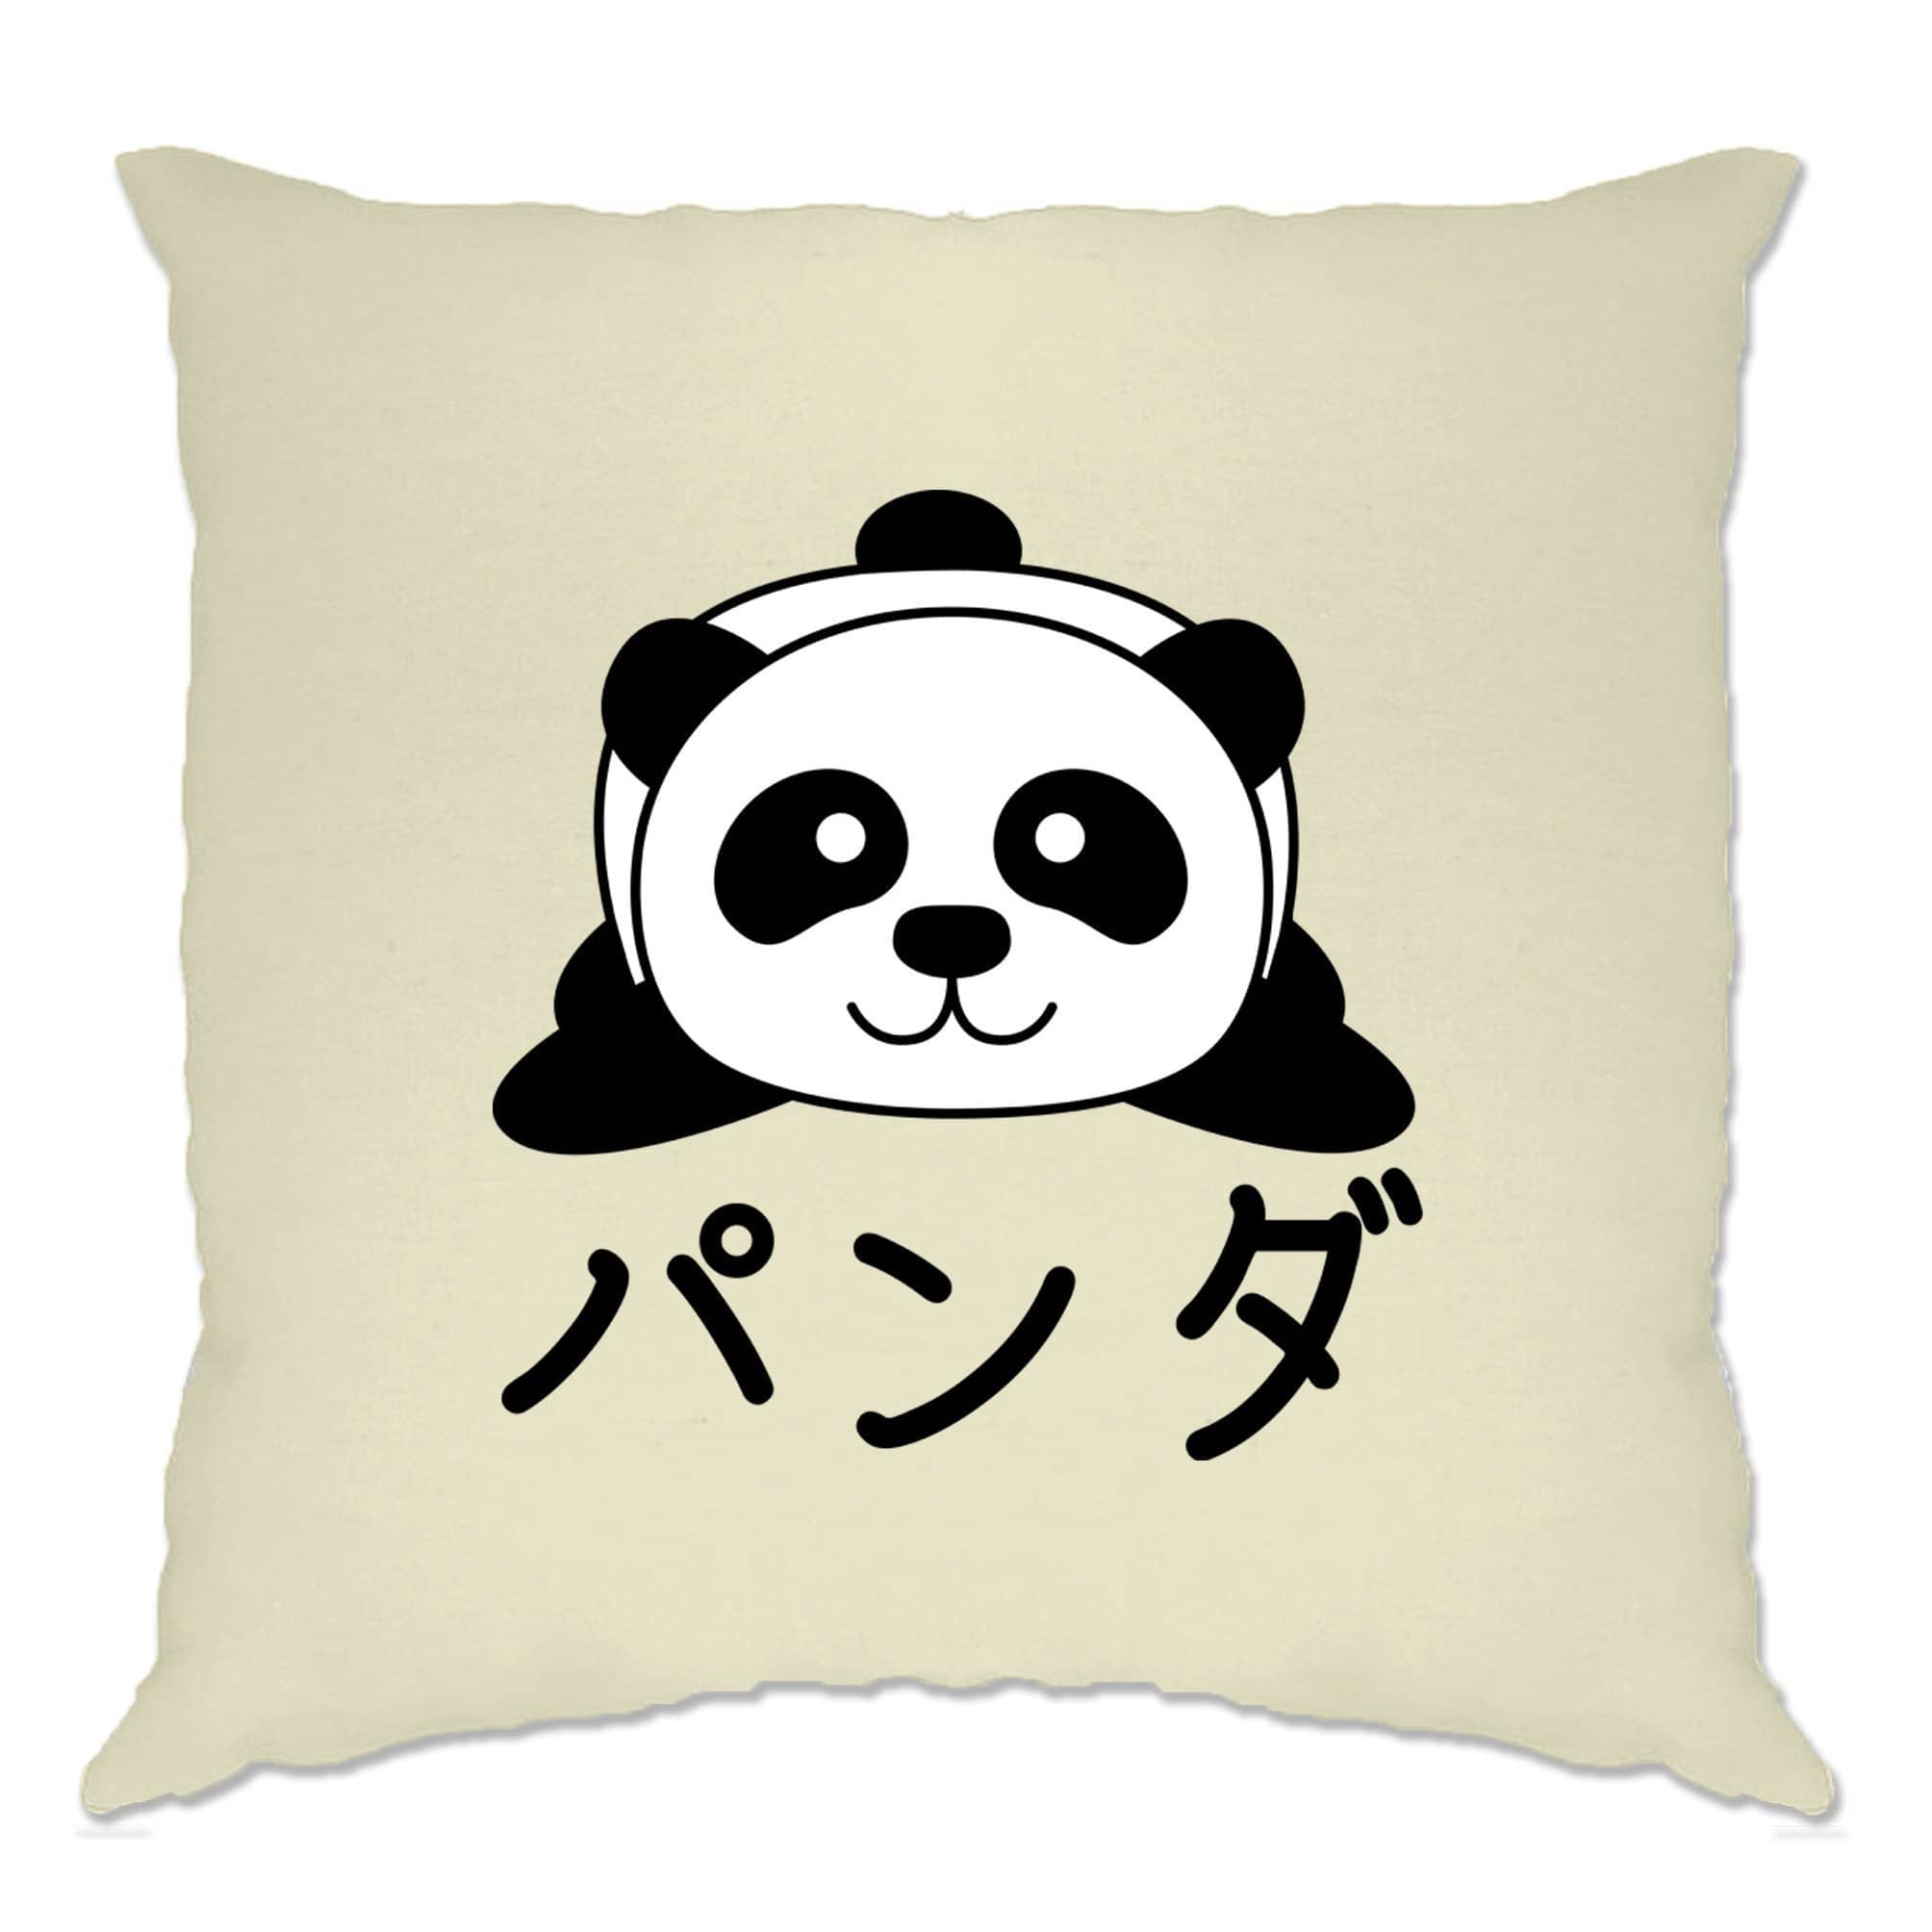 Cute Cushion Cover Japanese Baby Panda With Text